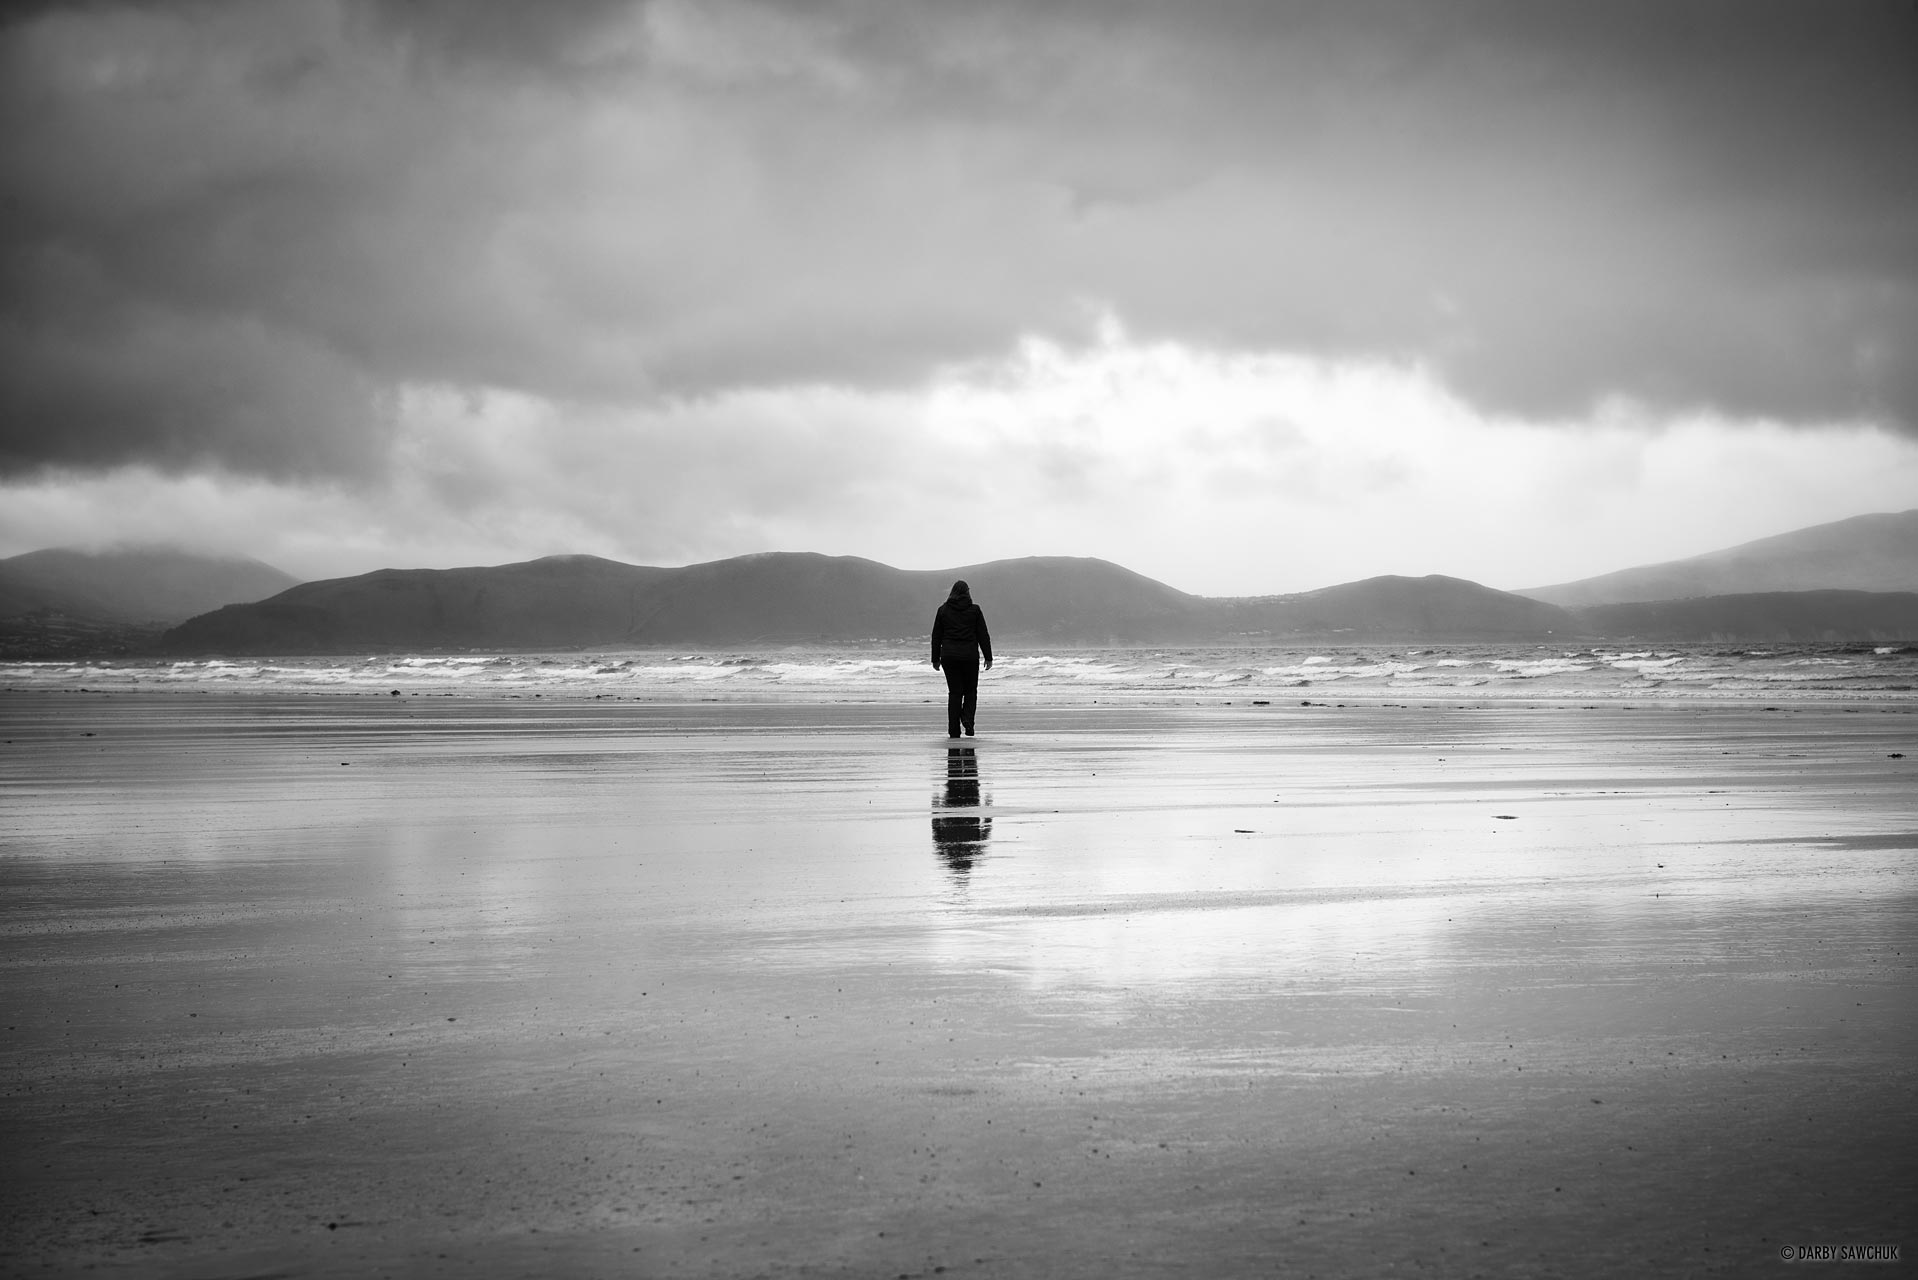 Black and white travel photography darby sawchuk photography